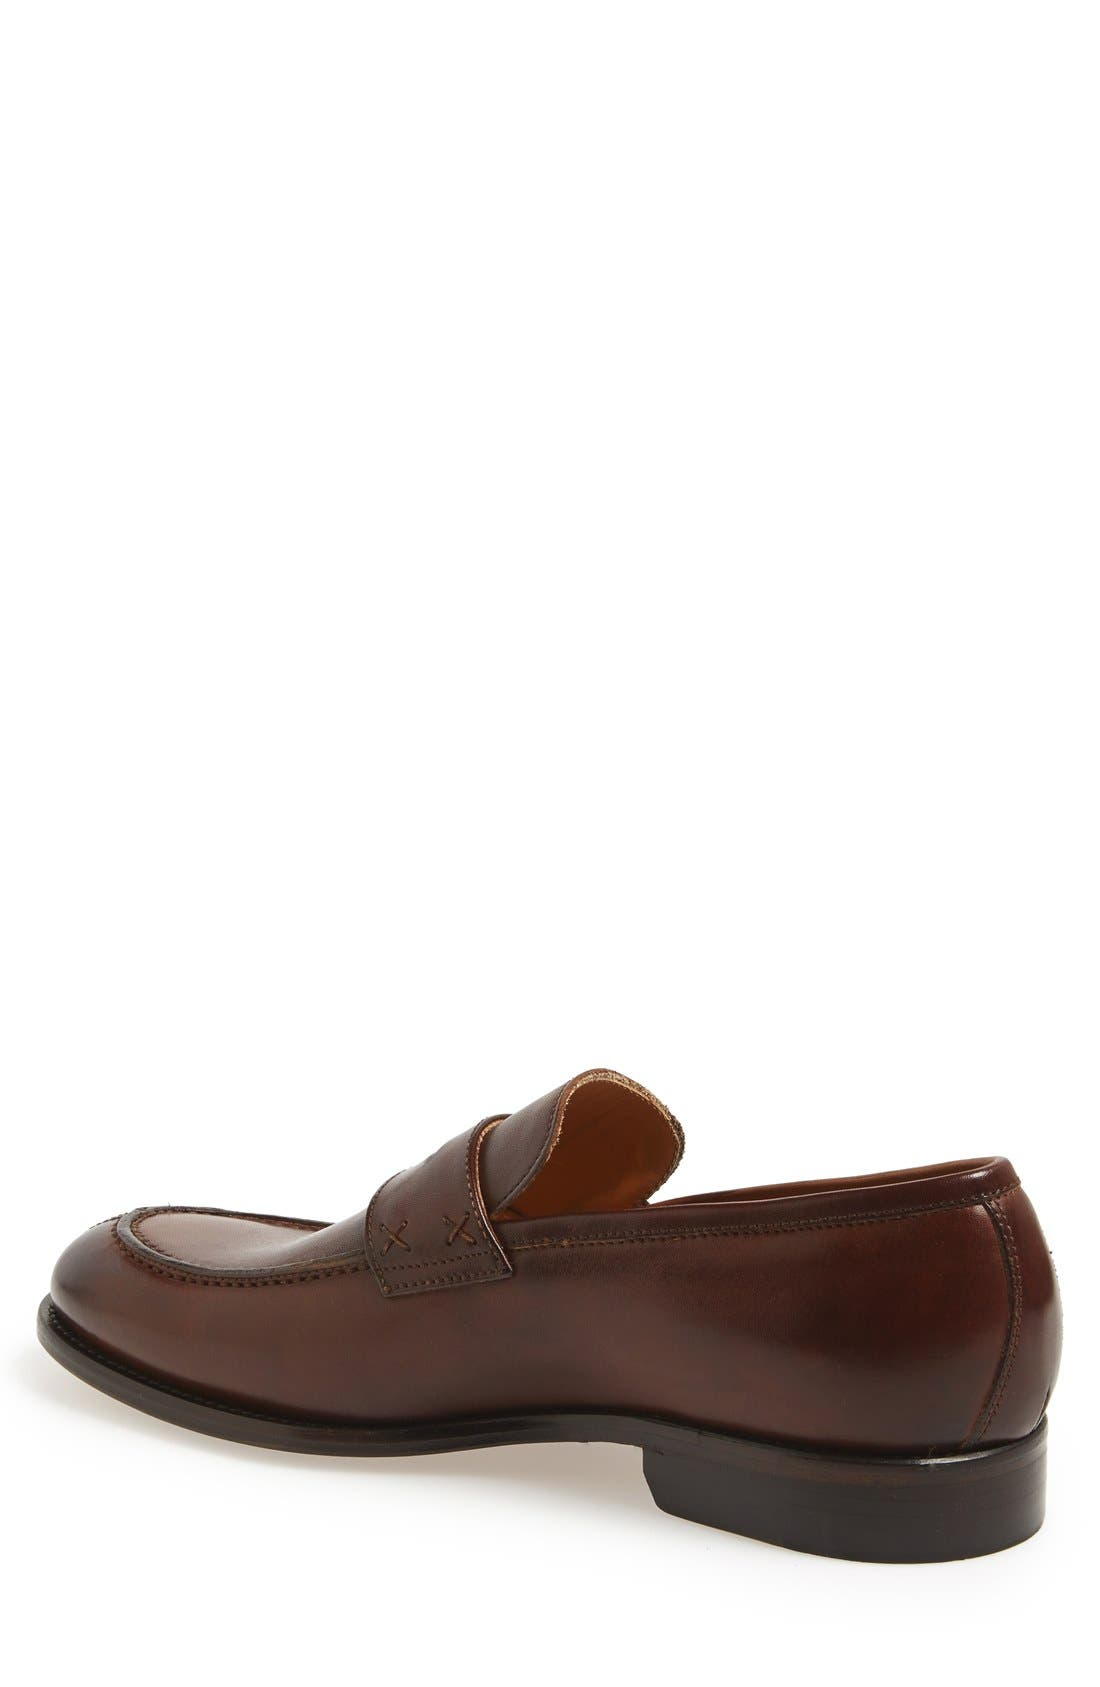 Alternate Image 2  - Dogen 'Vitello Crust' Penny Loafer (Men)